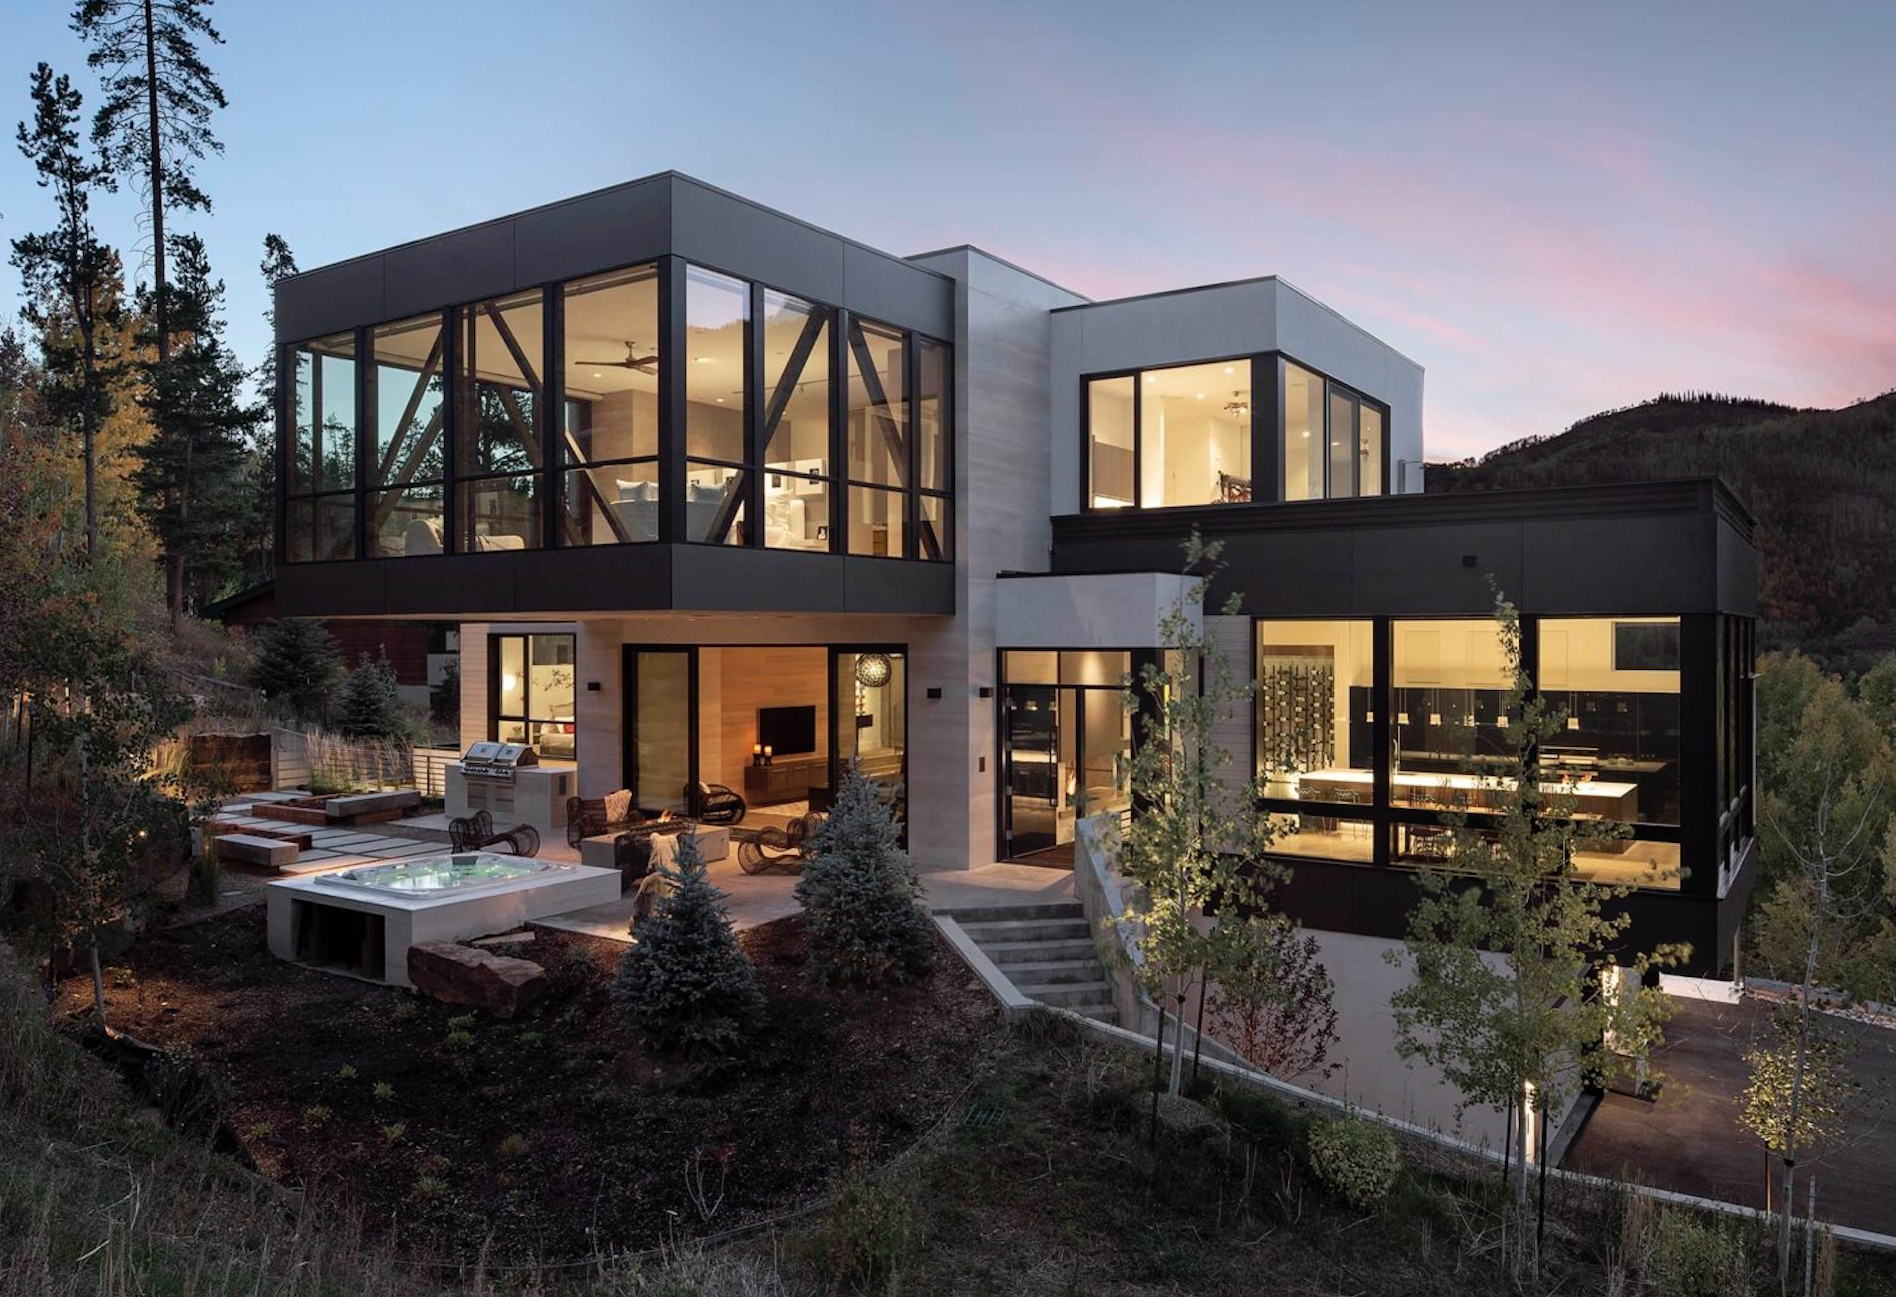 NAHB: Trends from the Best In American Living Awards